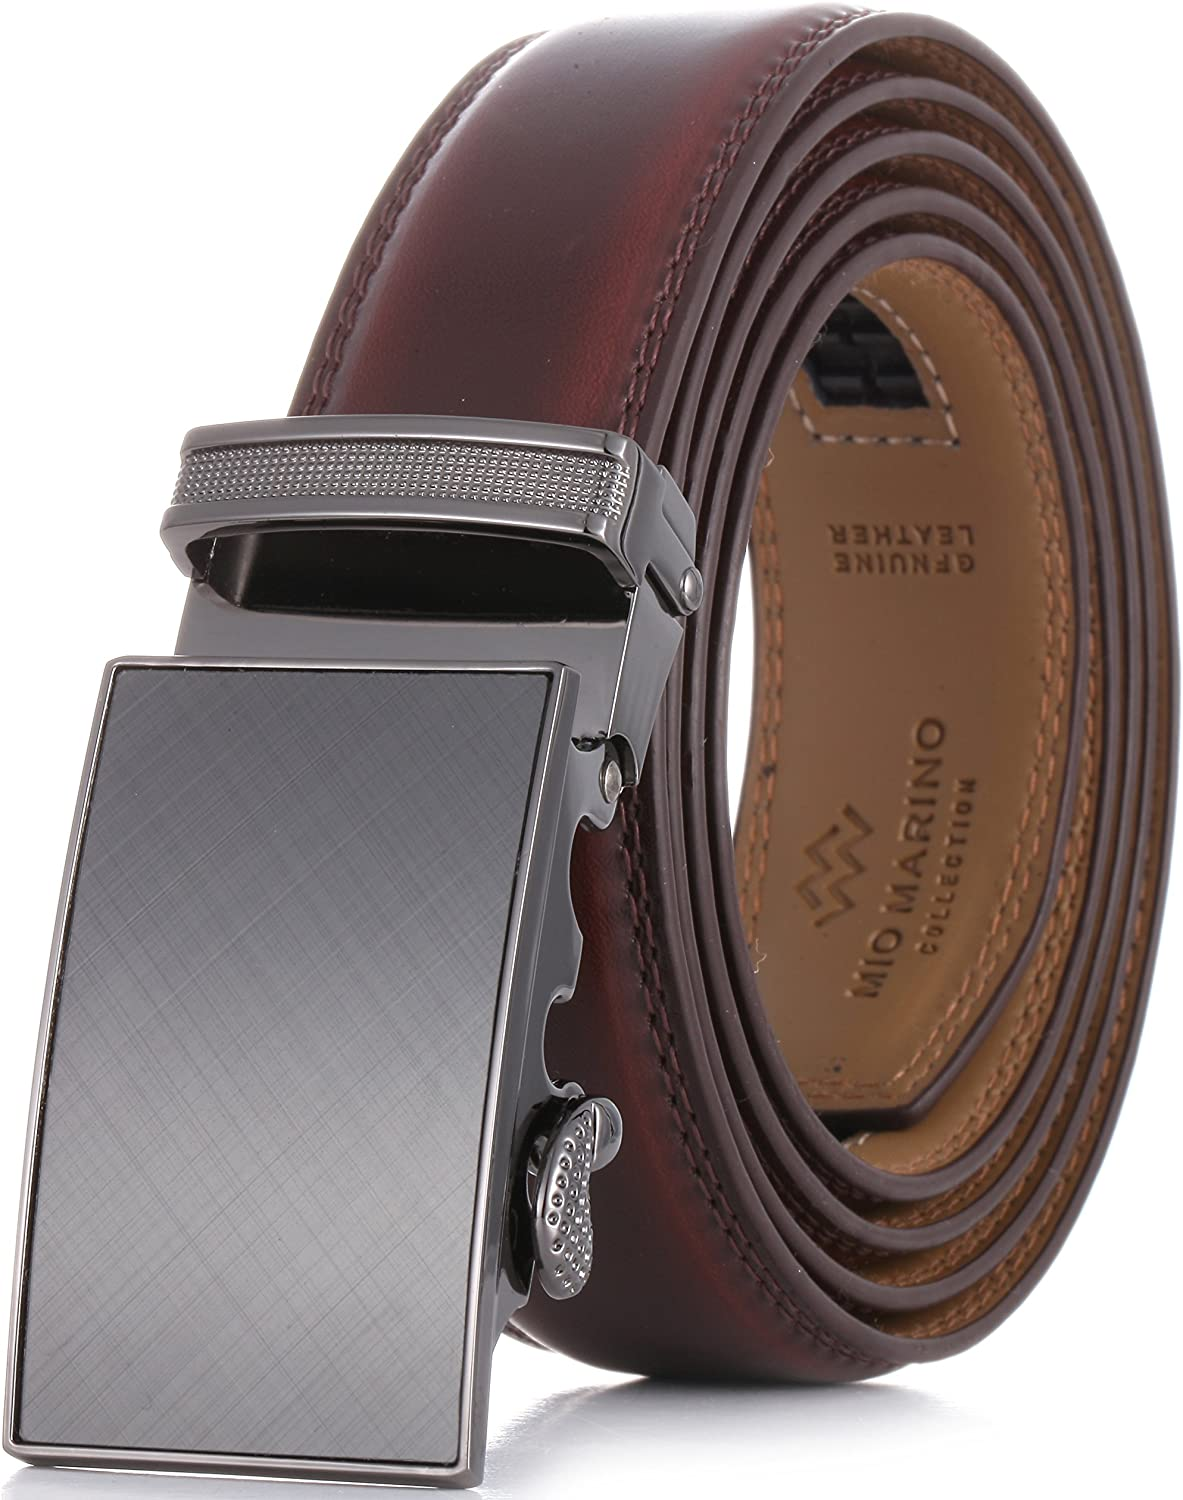 Marino Men's Genuine Leather Ratchet Dress Belt With Automatic Buckle, Trim to Fit Enclosed in an Elegant Gift Box